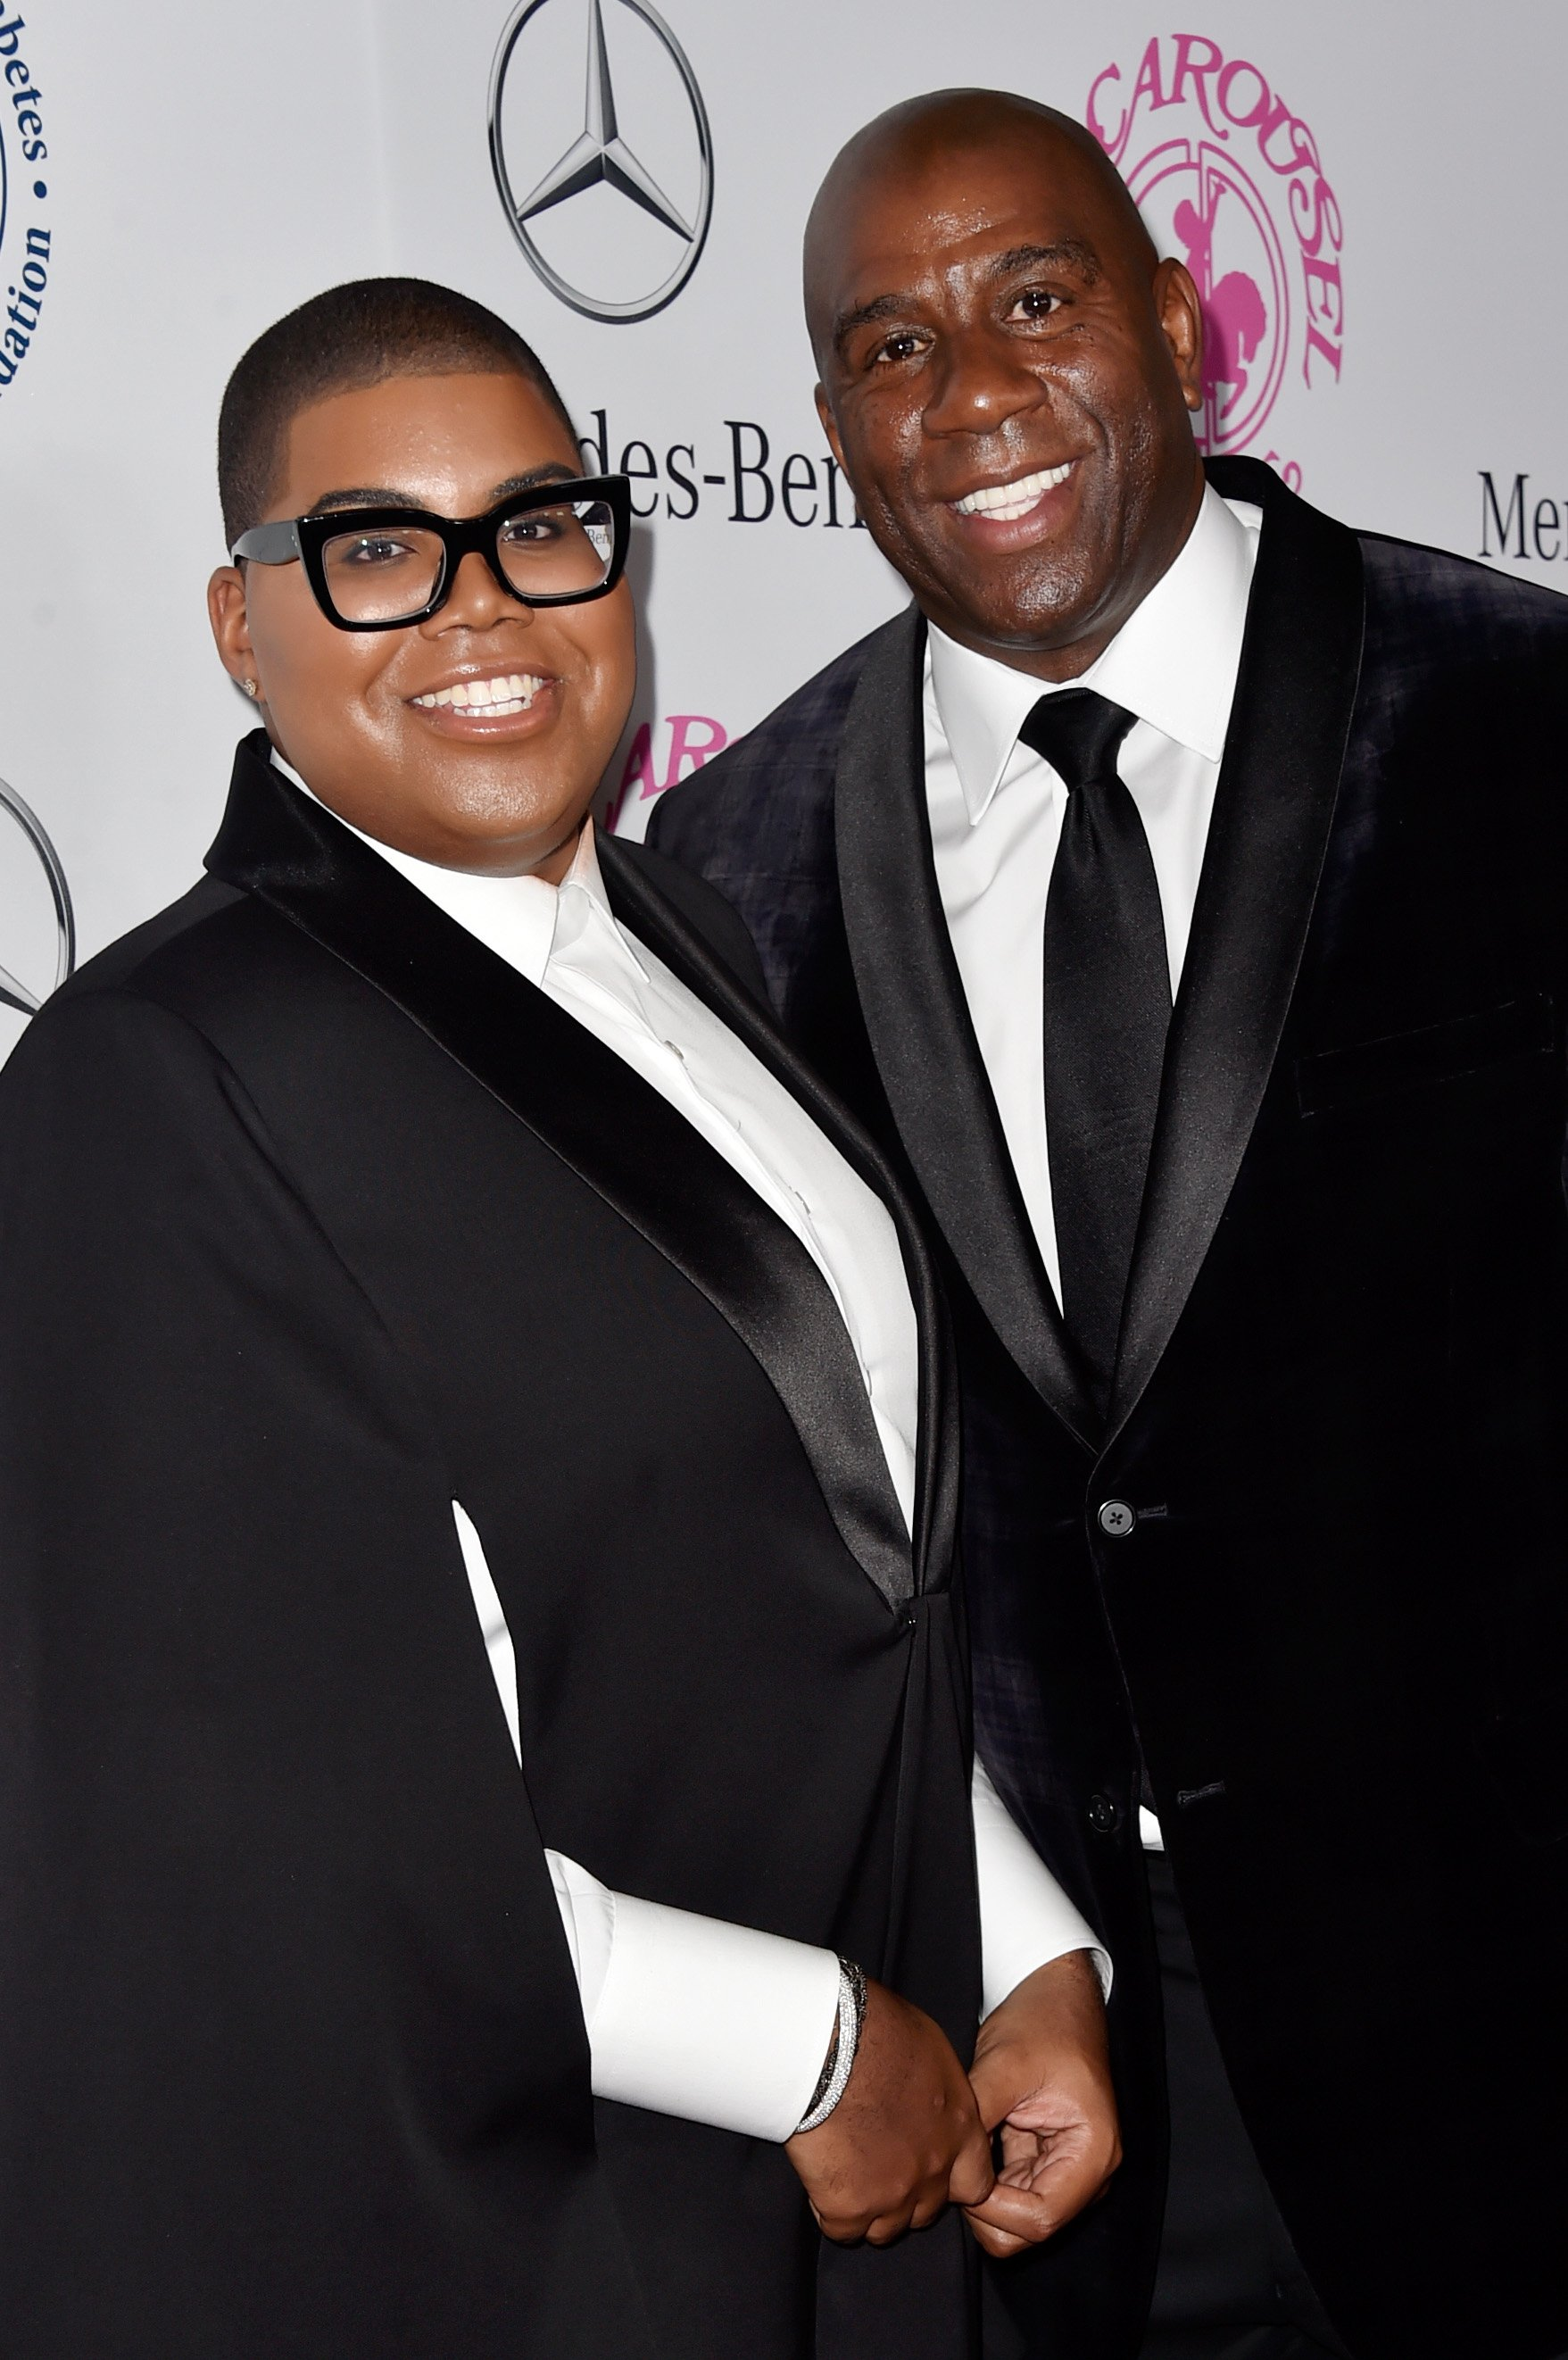 EJ Johnso and Magic Johnson at the 2014 Carousel of Hope Ball on October 11, 2014 in Beverly Hills, California | Photo: Getty Images